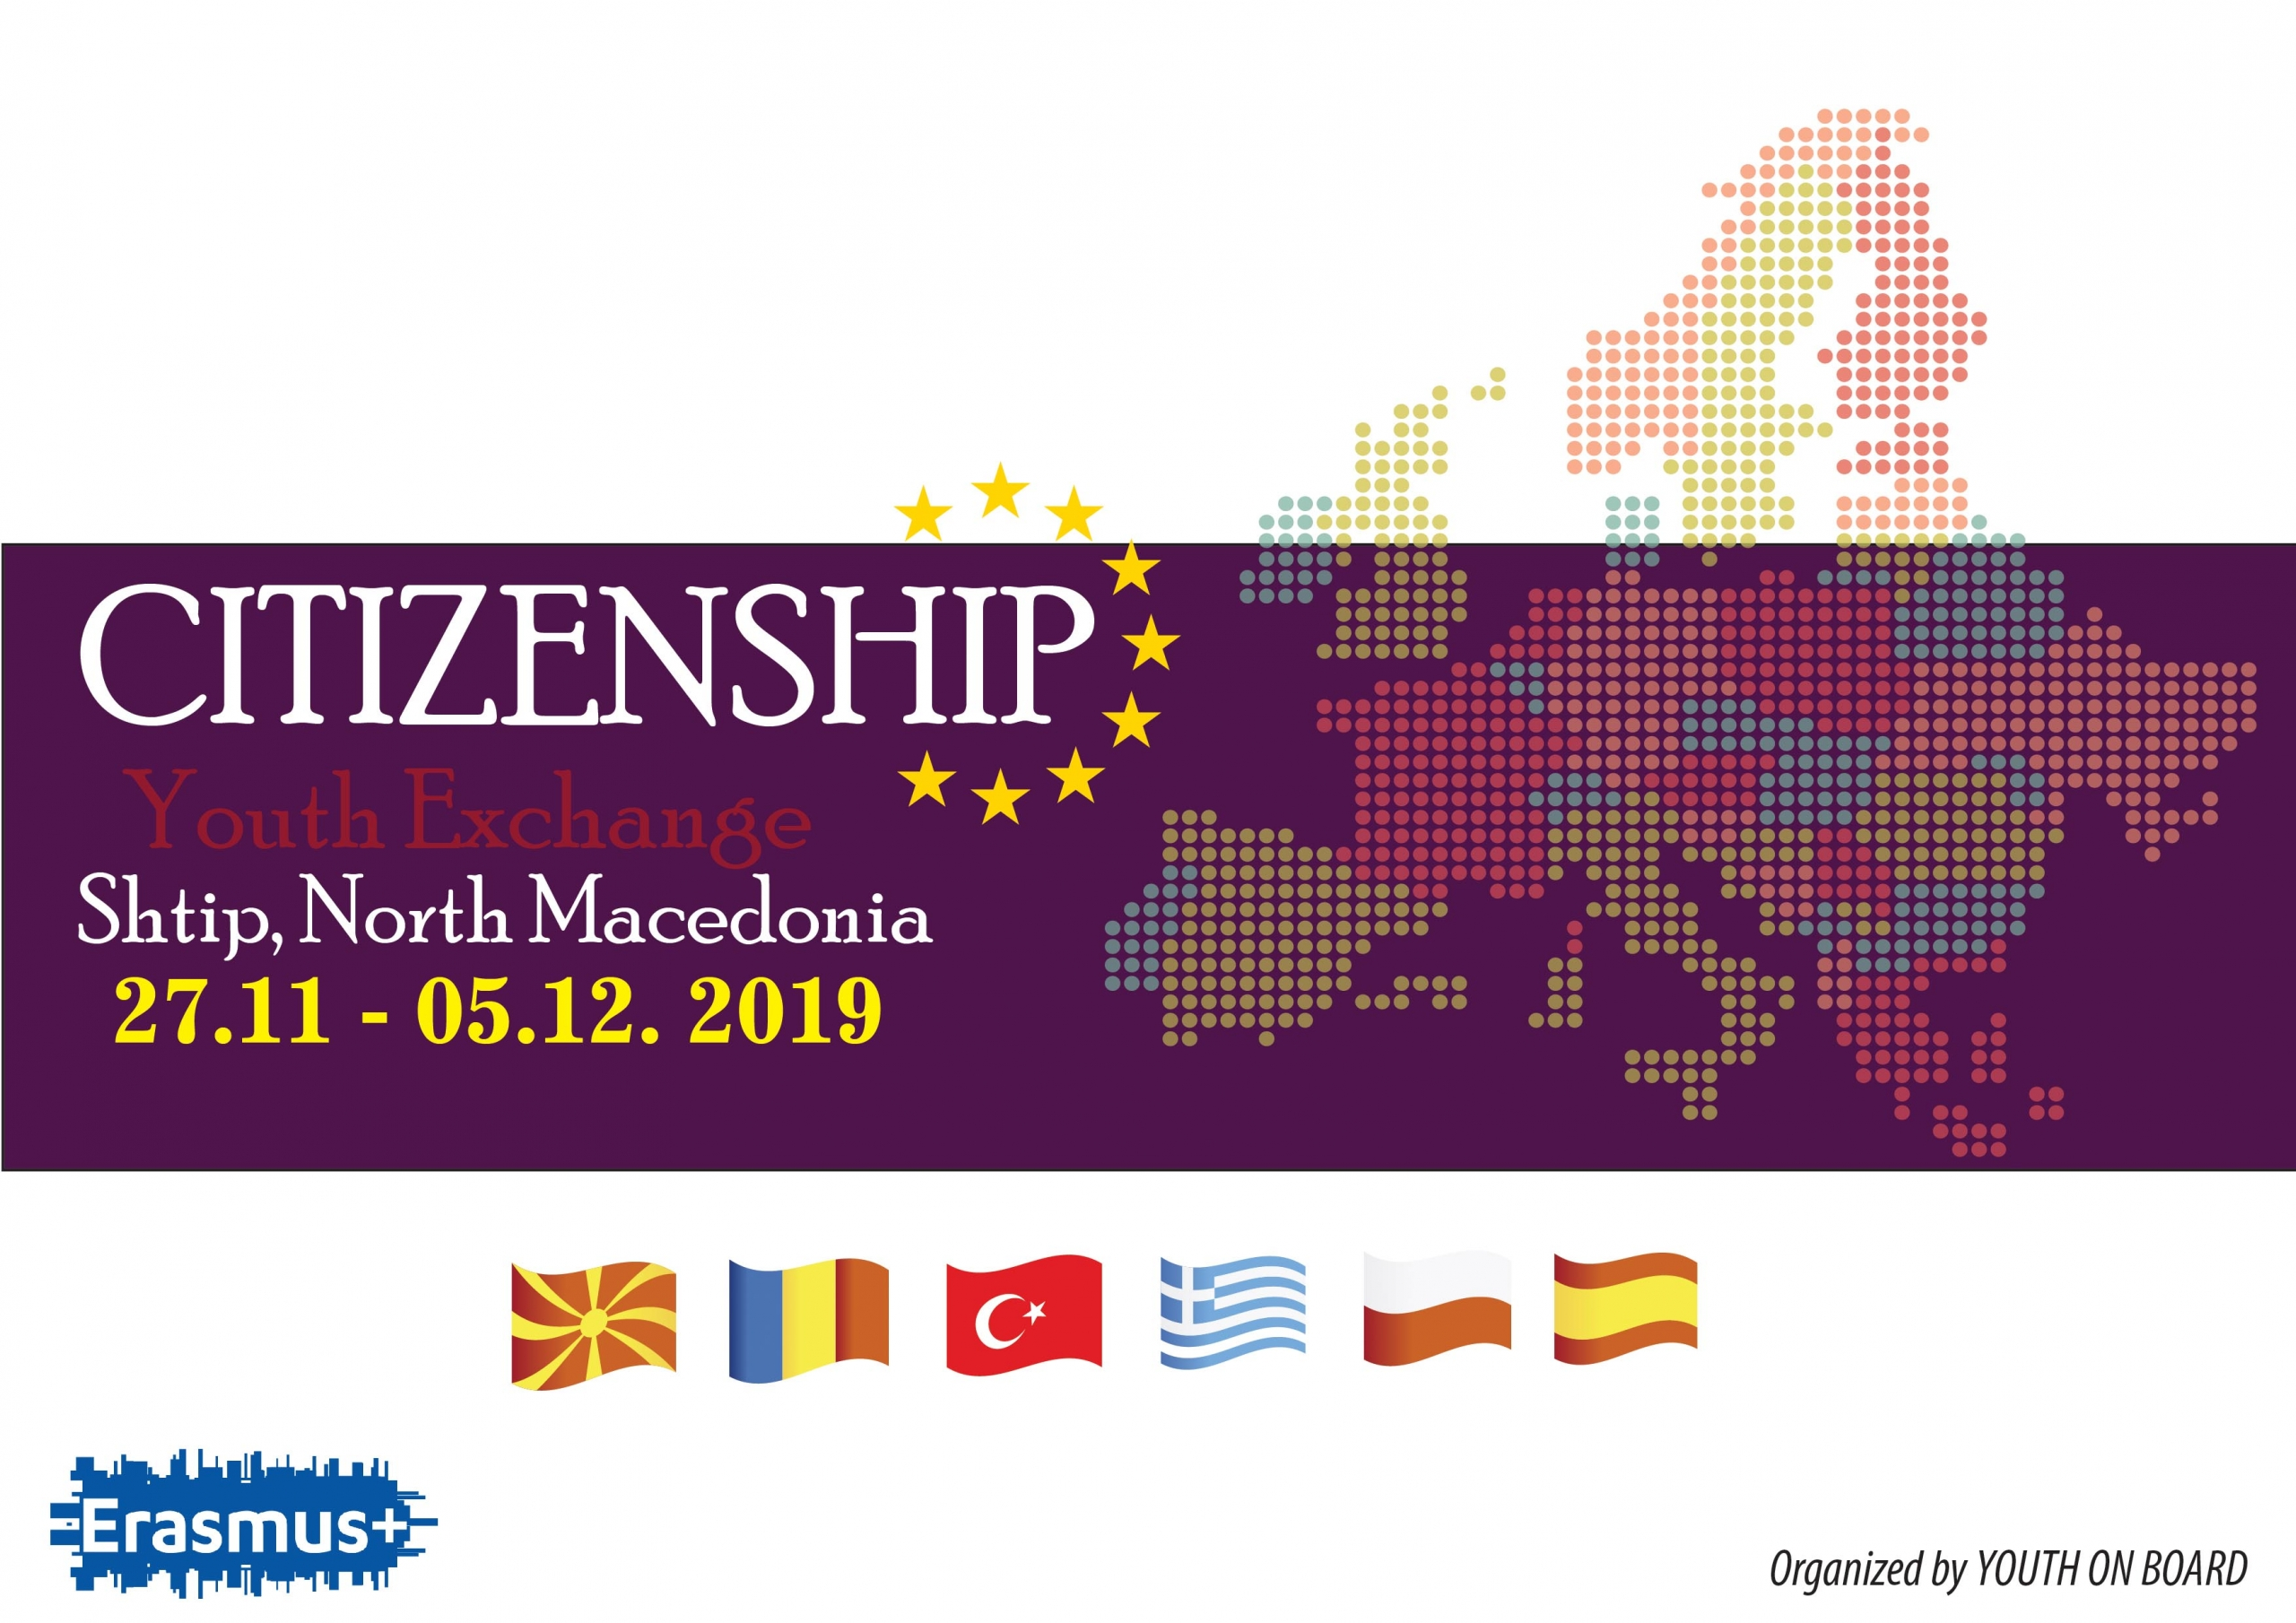 CITIZENSHIP – Youth Exchange 27.11-05.12.2019